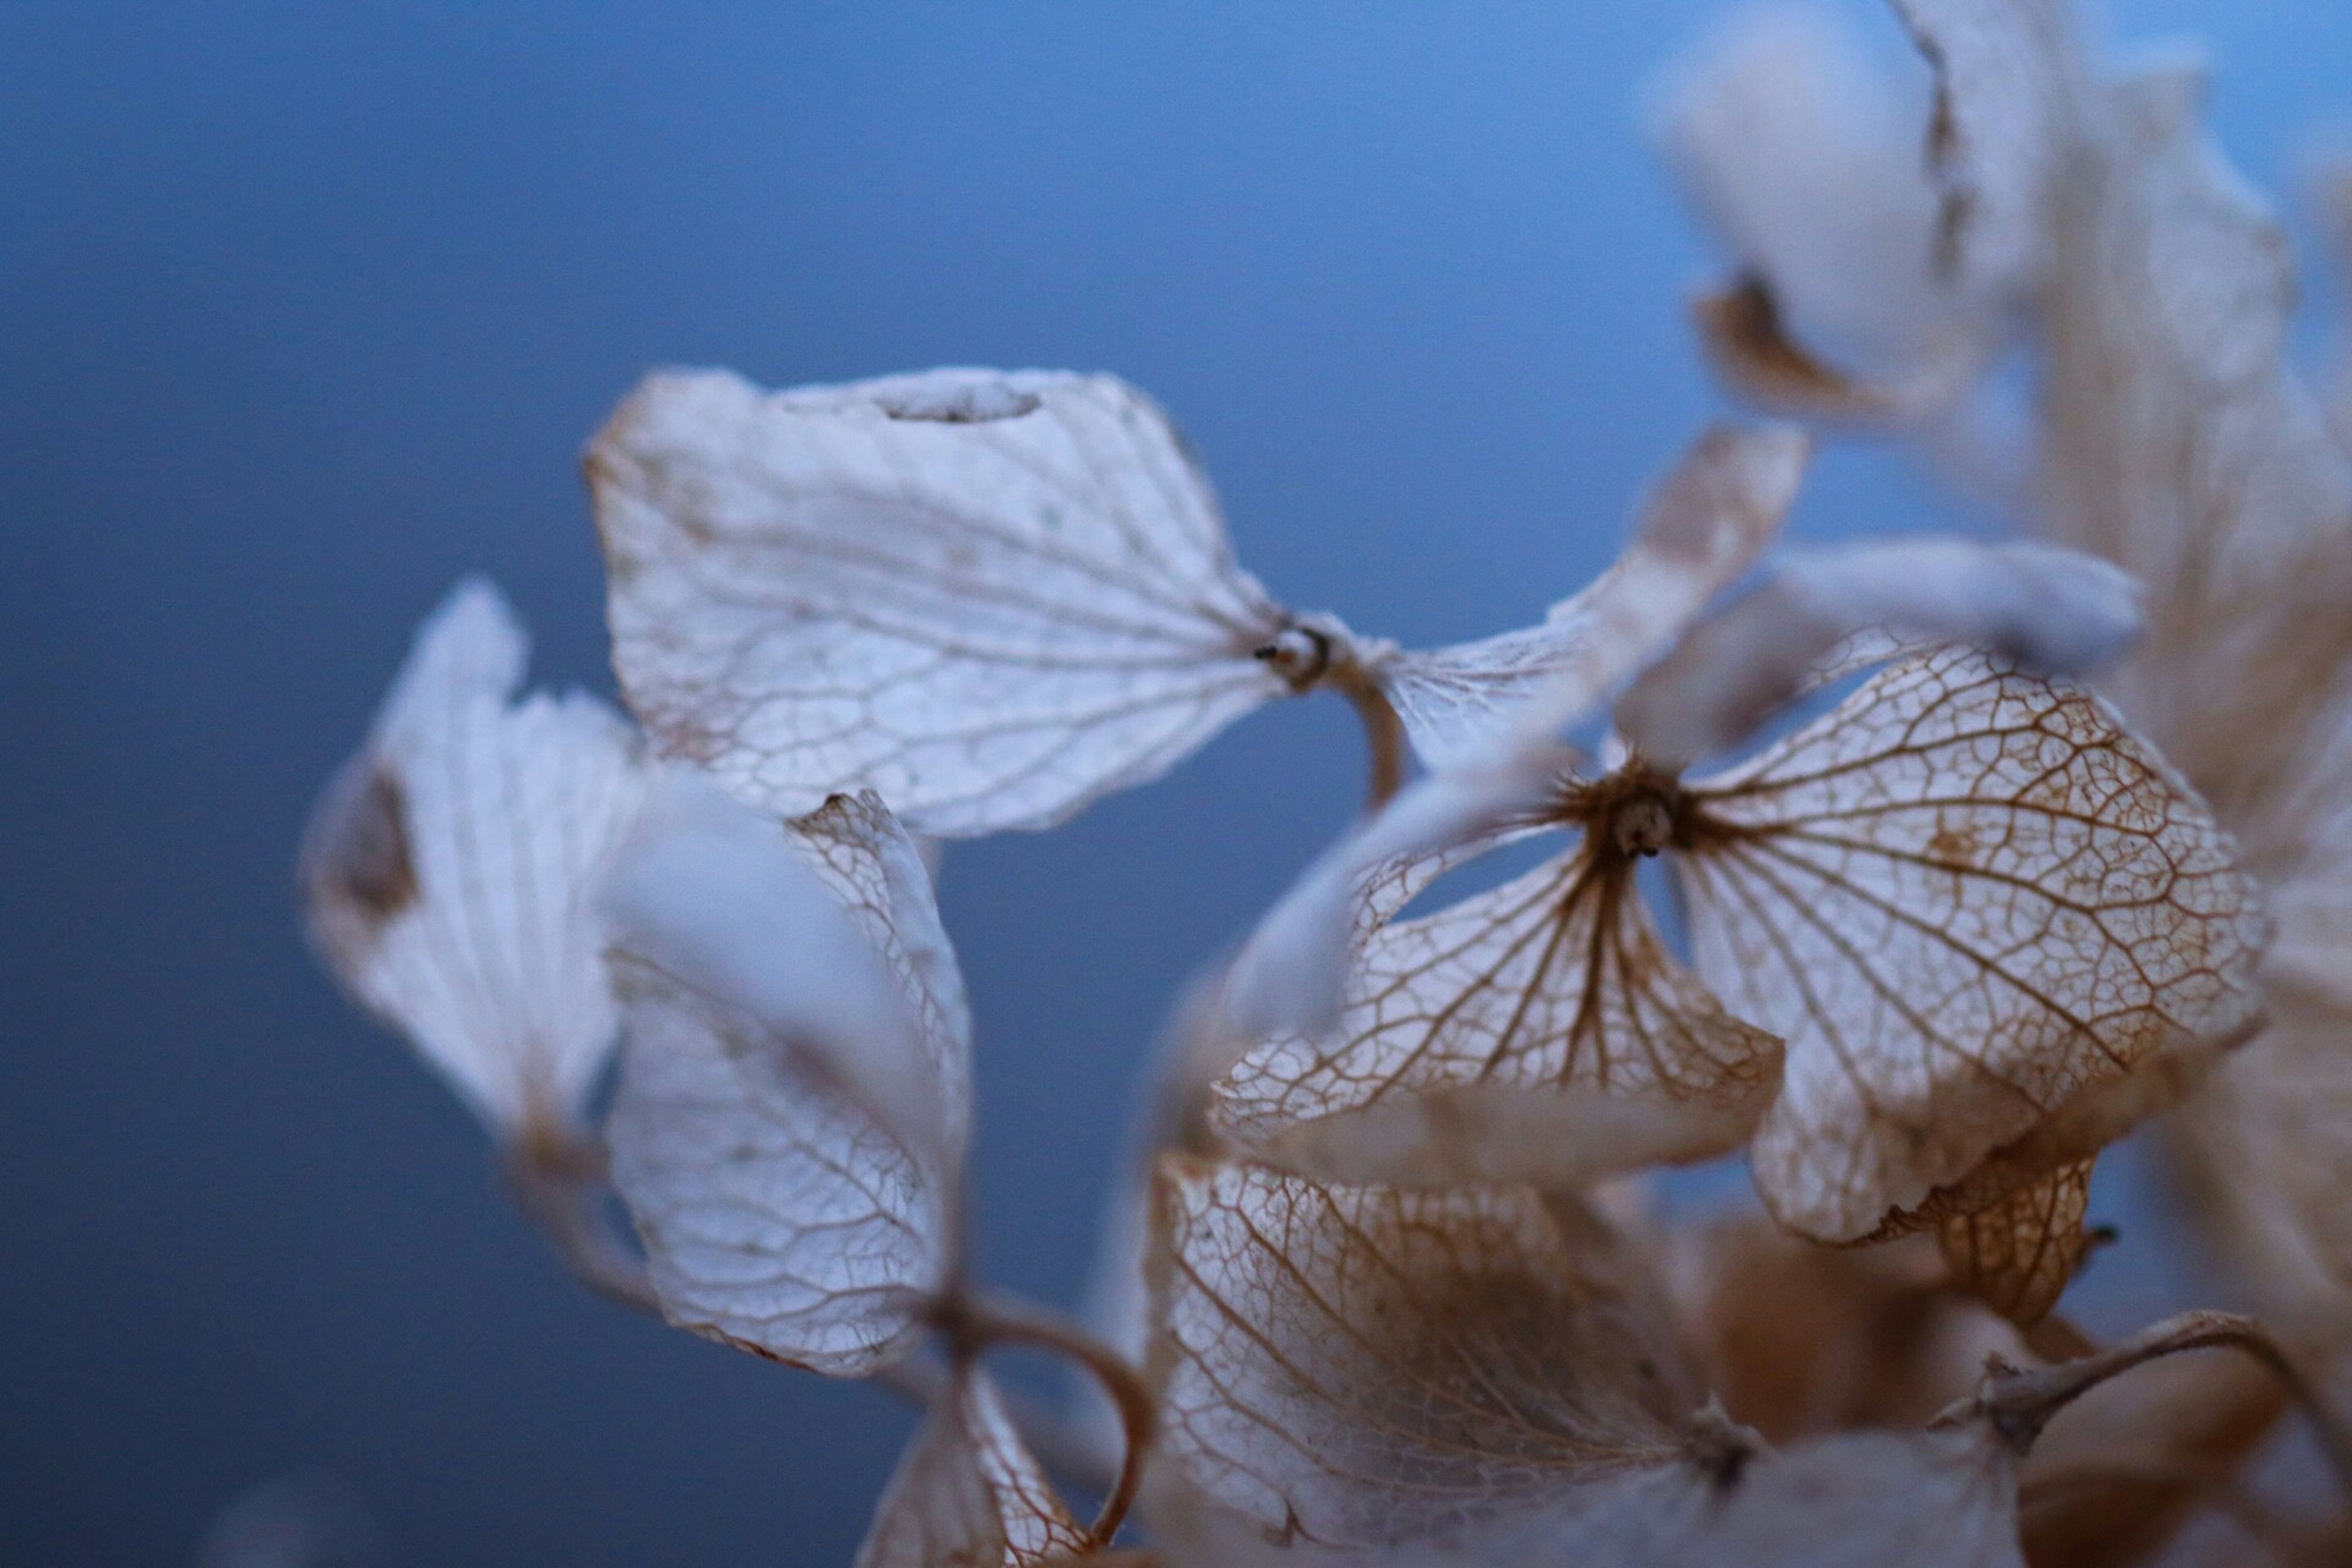 focus on foreground, close-up, insect, animals in the wild, wildlife, one animal, nature, animal themes, dry, day, natural pattern, outdoors, fragility, no people, selective focus, dead plant, dragonfly, beauty in nature, white color, twig